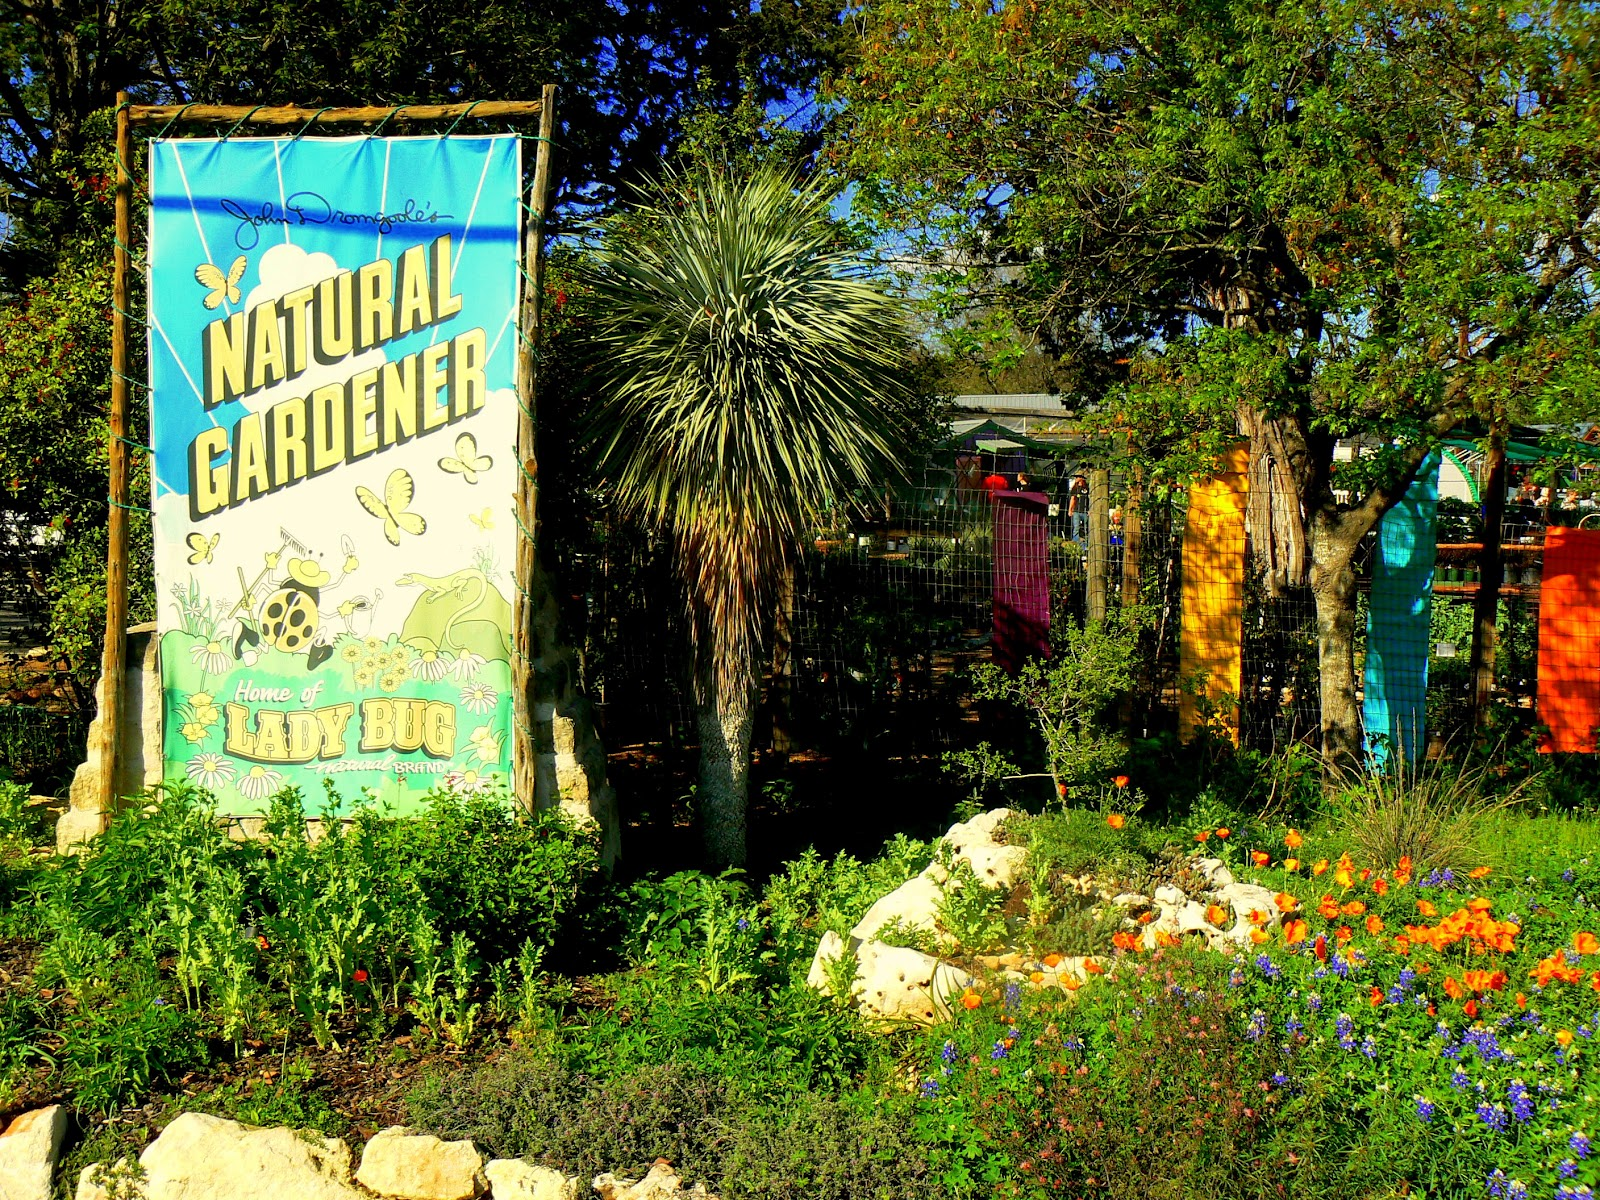 Great The Natural Gardener Is Located At 8648 Old Bee Caves Road In Austin. For  More Information Visit Their Website.